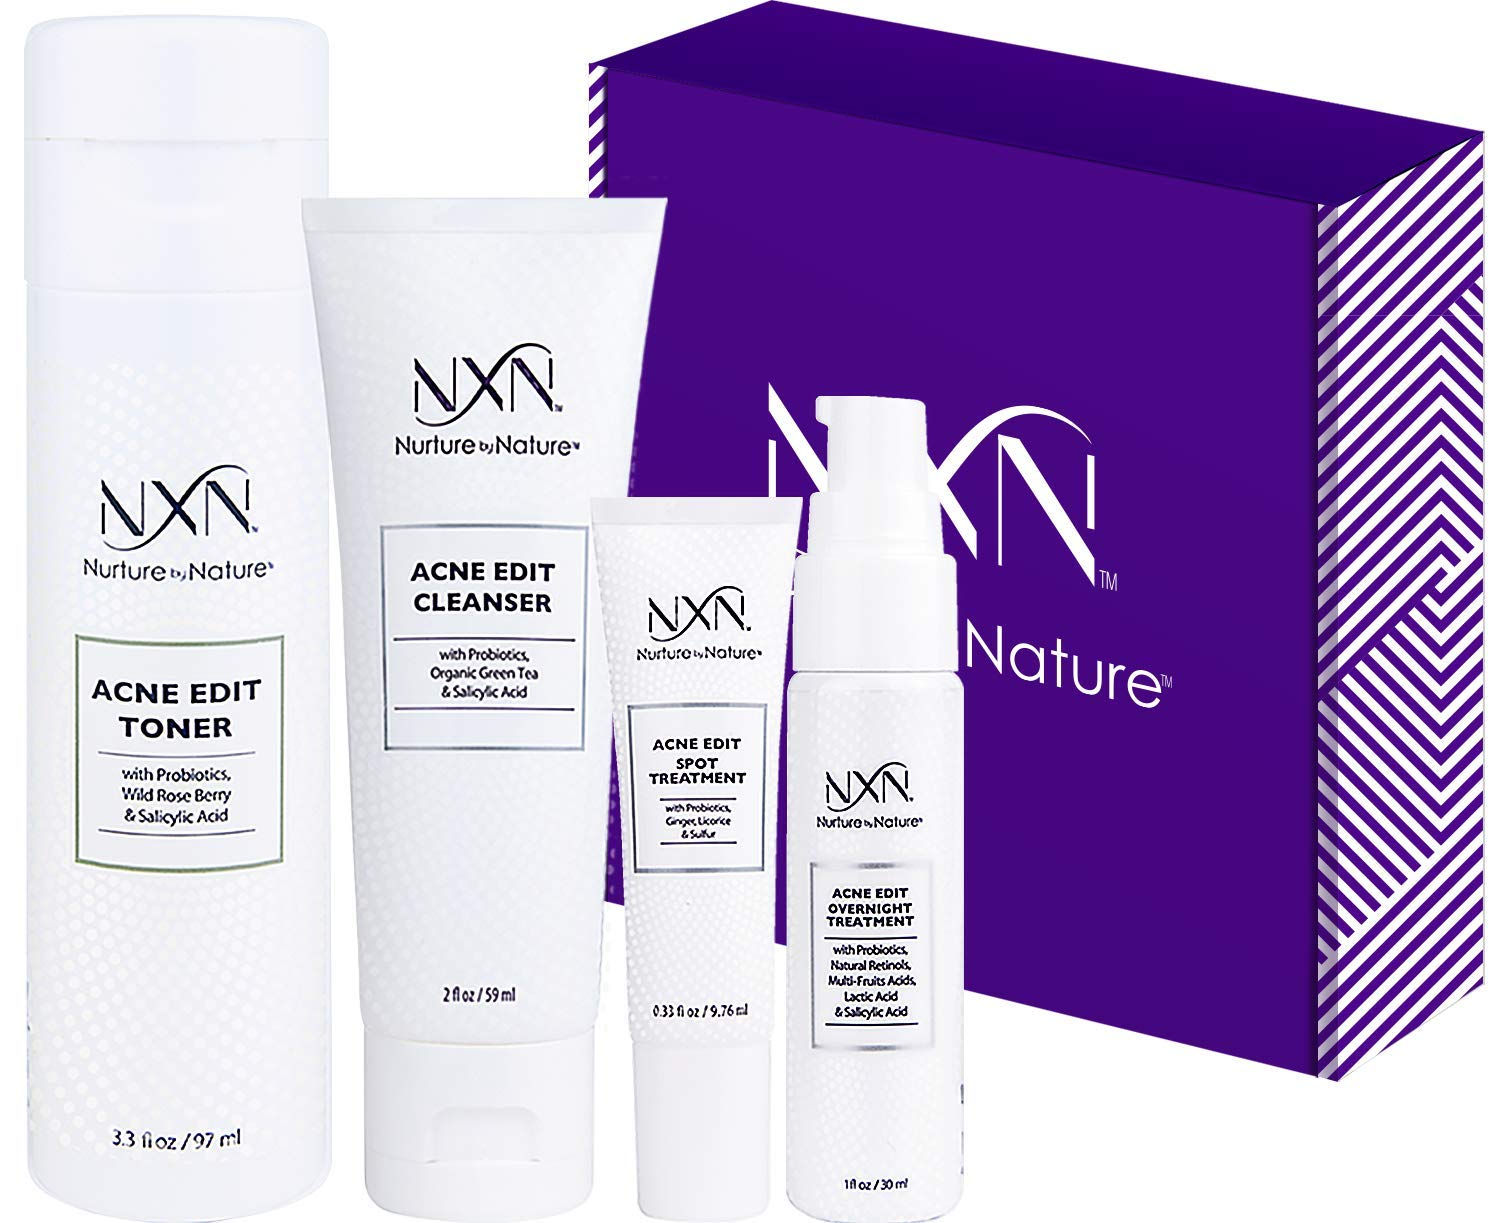 NxN Acne Treatment 4-Step Clear Skin System with Probiotics, Natural Multi-Fruit Extracts and Salicylic Acid for Acne Blemishes and Breakouts For all Skin Types (Including Sensitive Skin) by Nurture by Nature